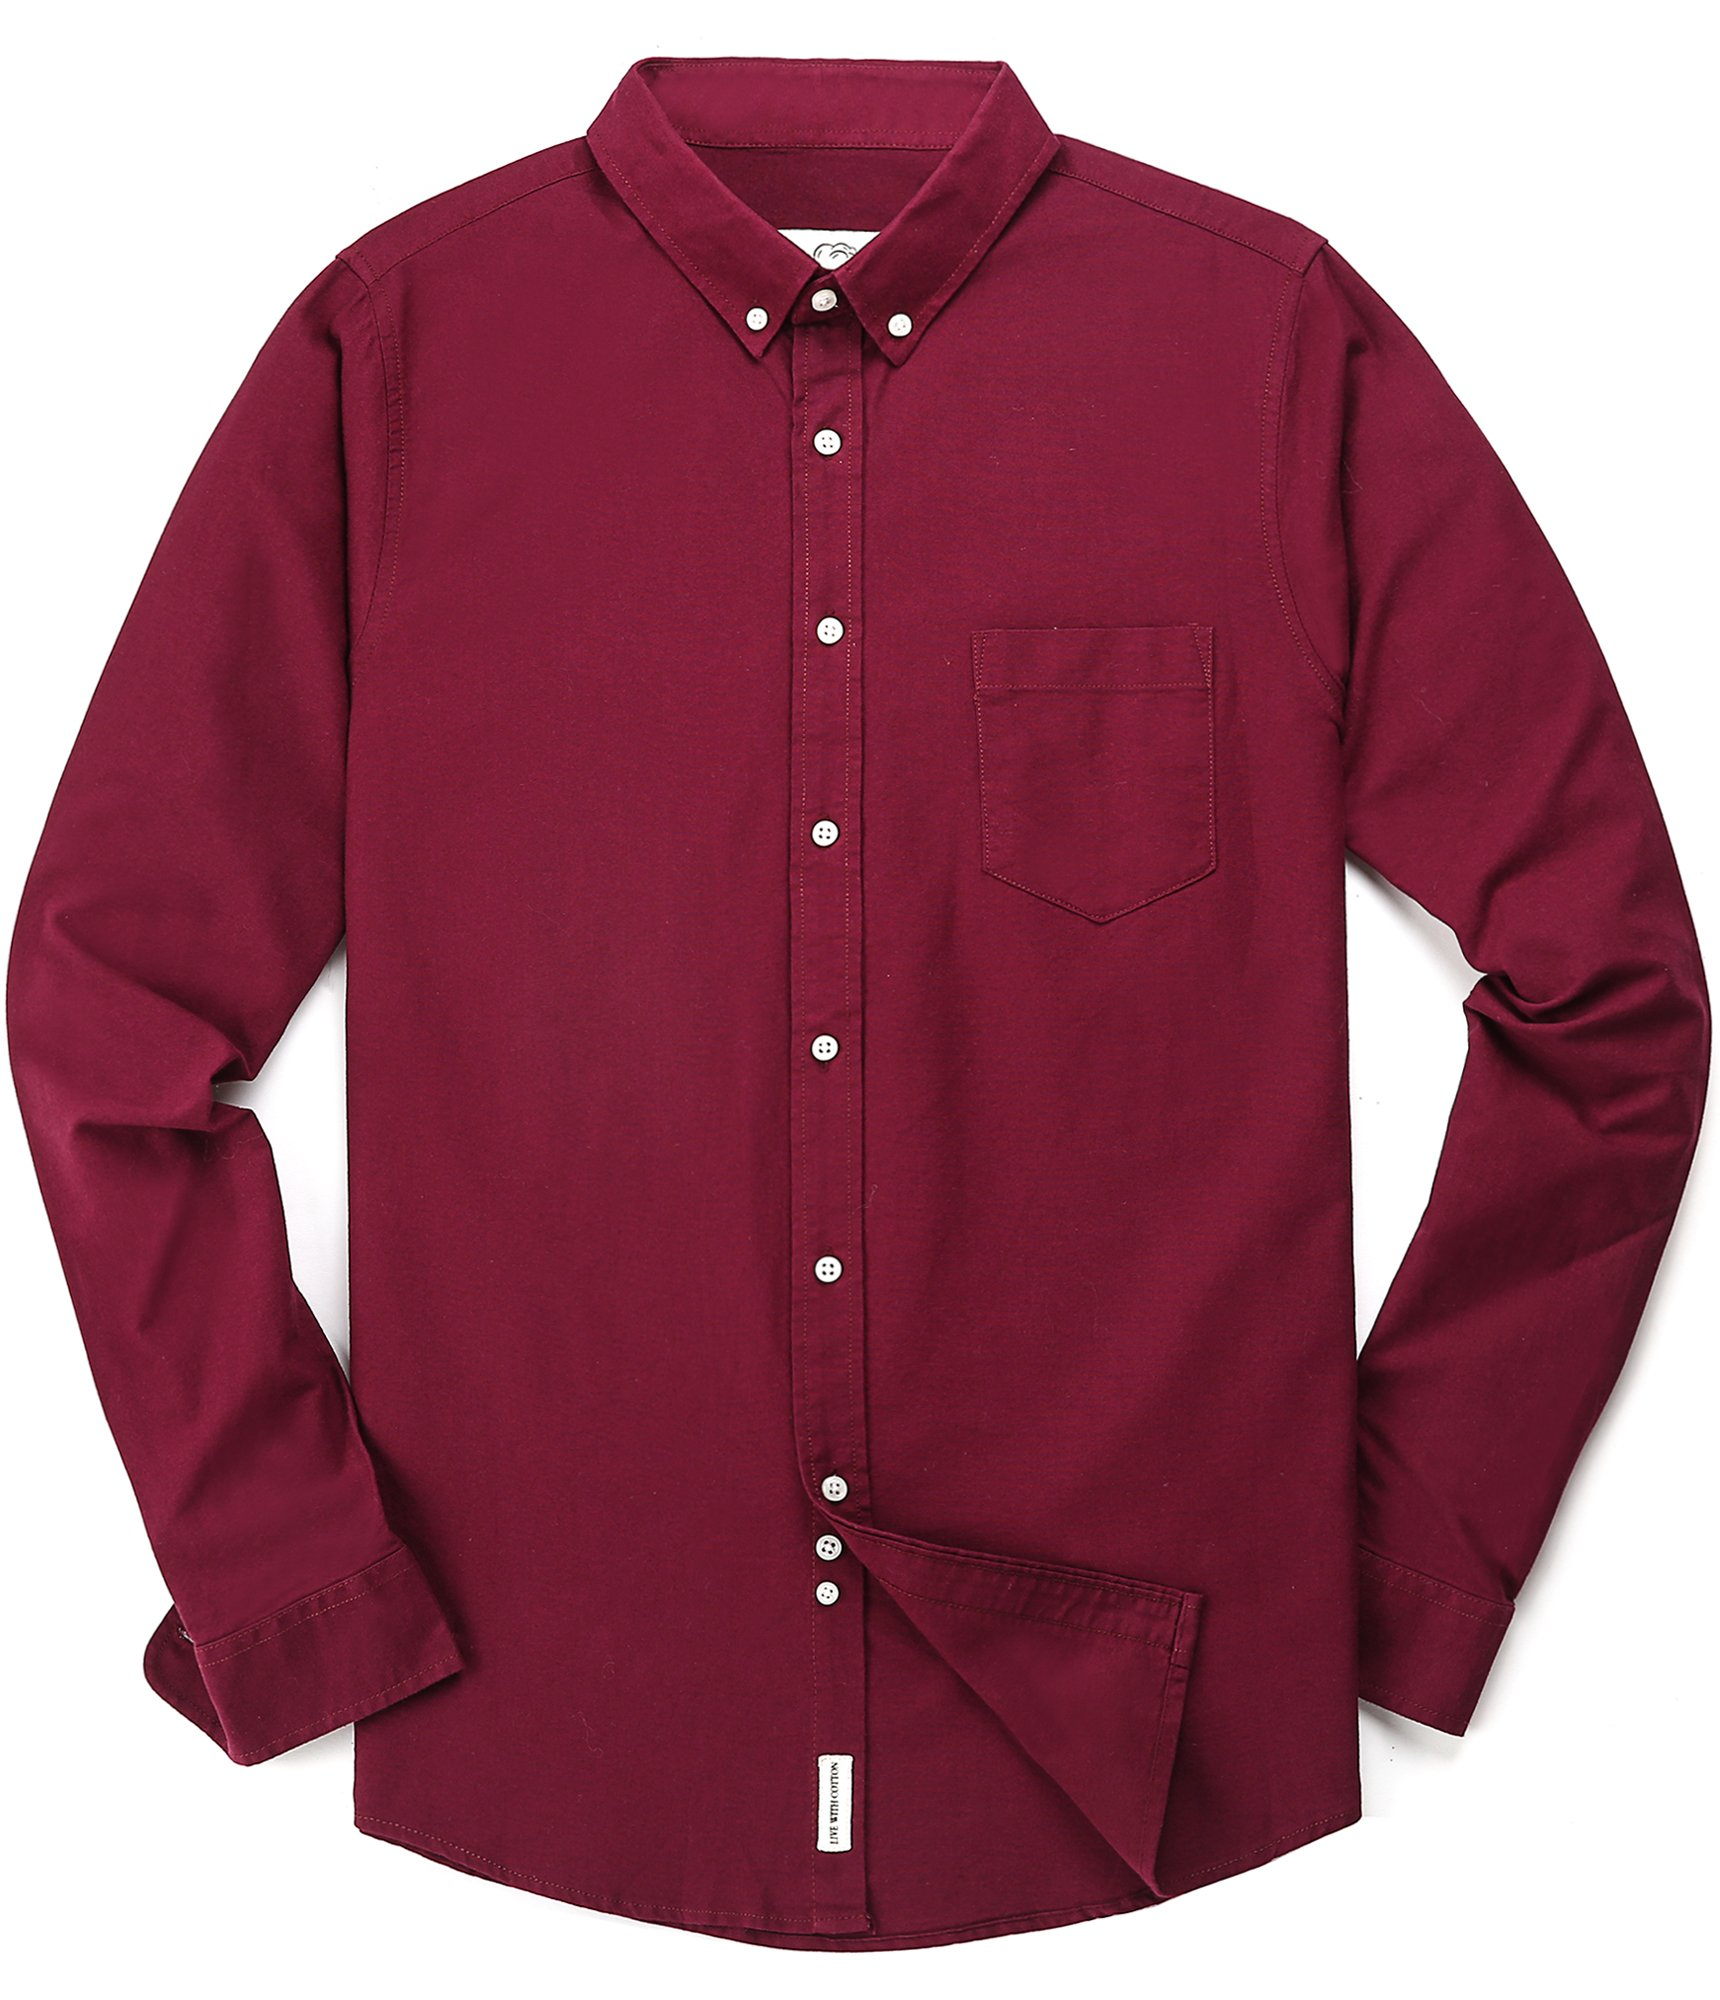 Men's Oxford Long Sleeve Button Down Dress Shirt with Pocket,Wine Red,Medium